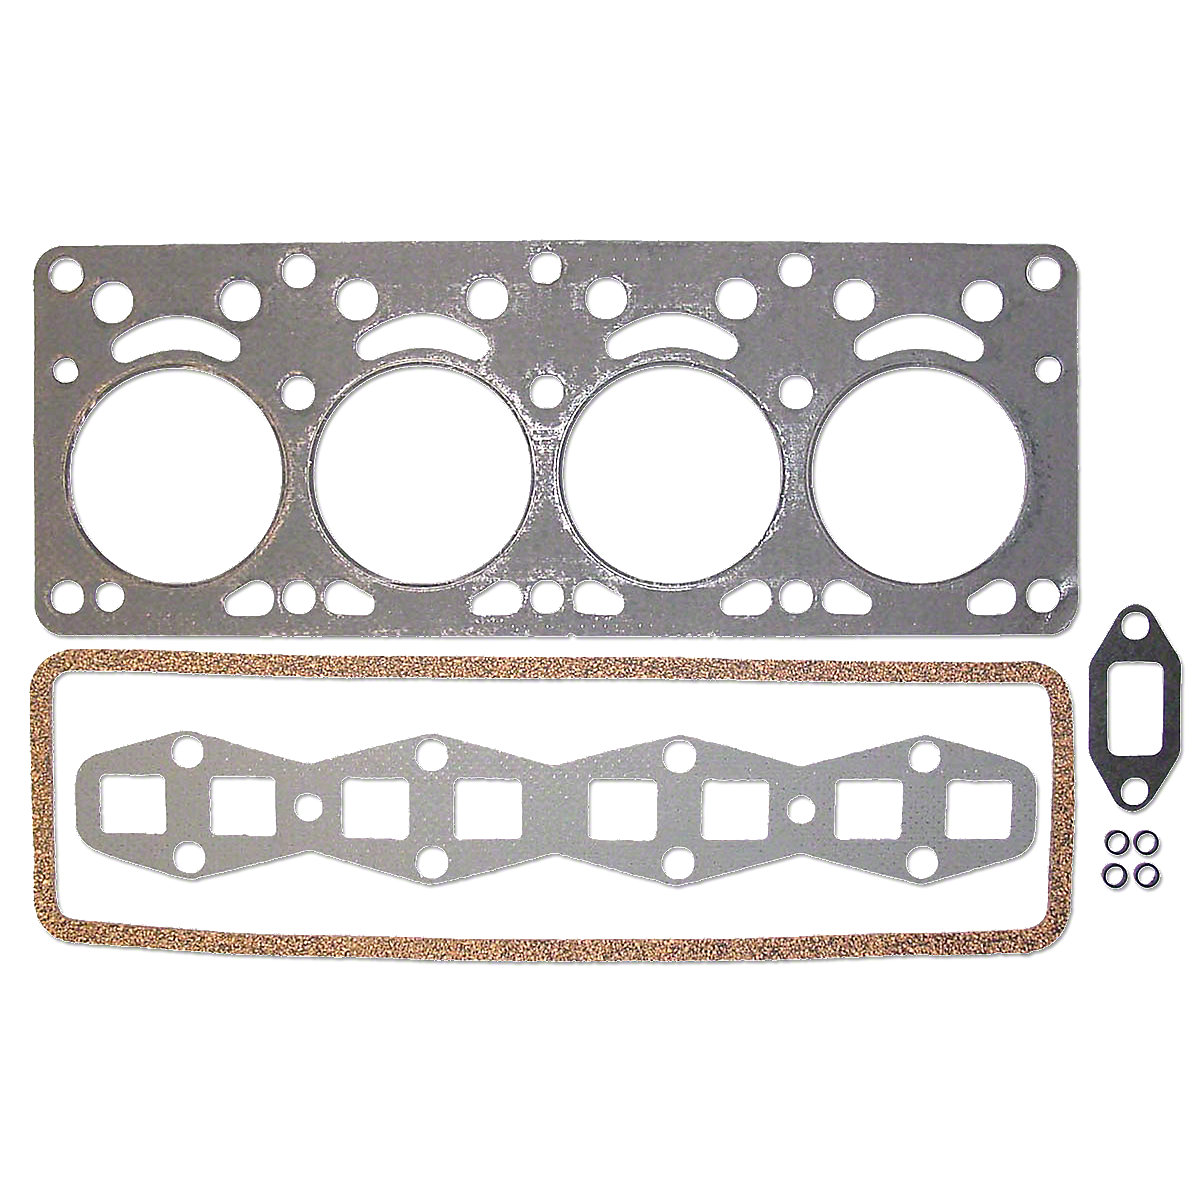 Head Gasket Set For Massey Ferguson: TE20, TO20, TO30.